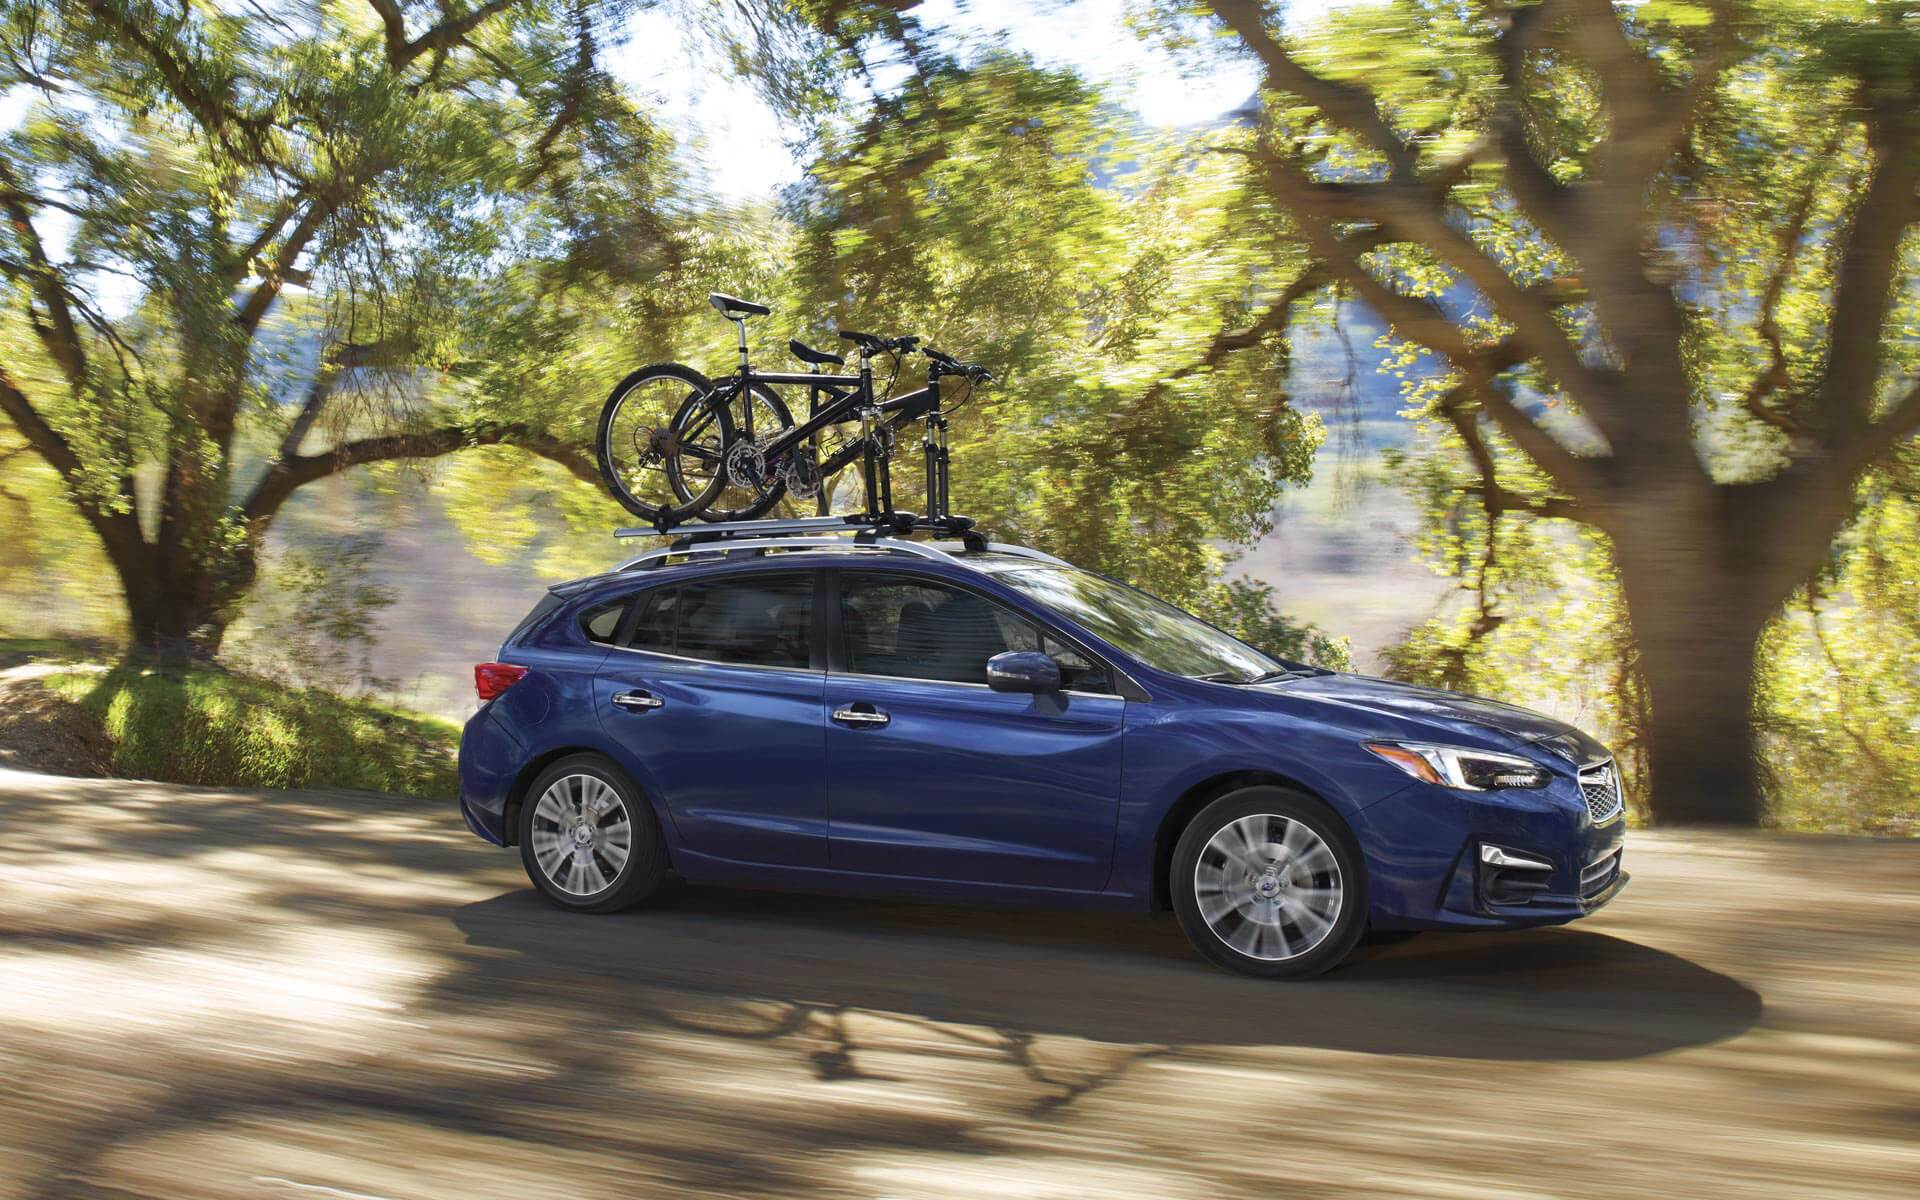 2018 Subaru Impreza 2.0i 5-door near Detroit MI